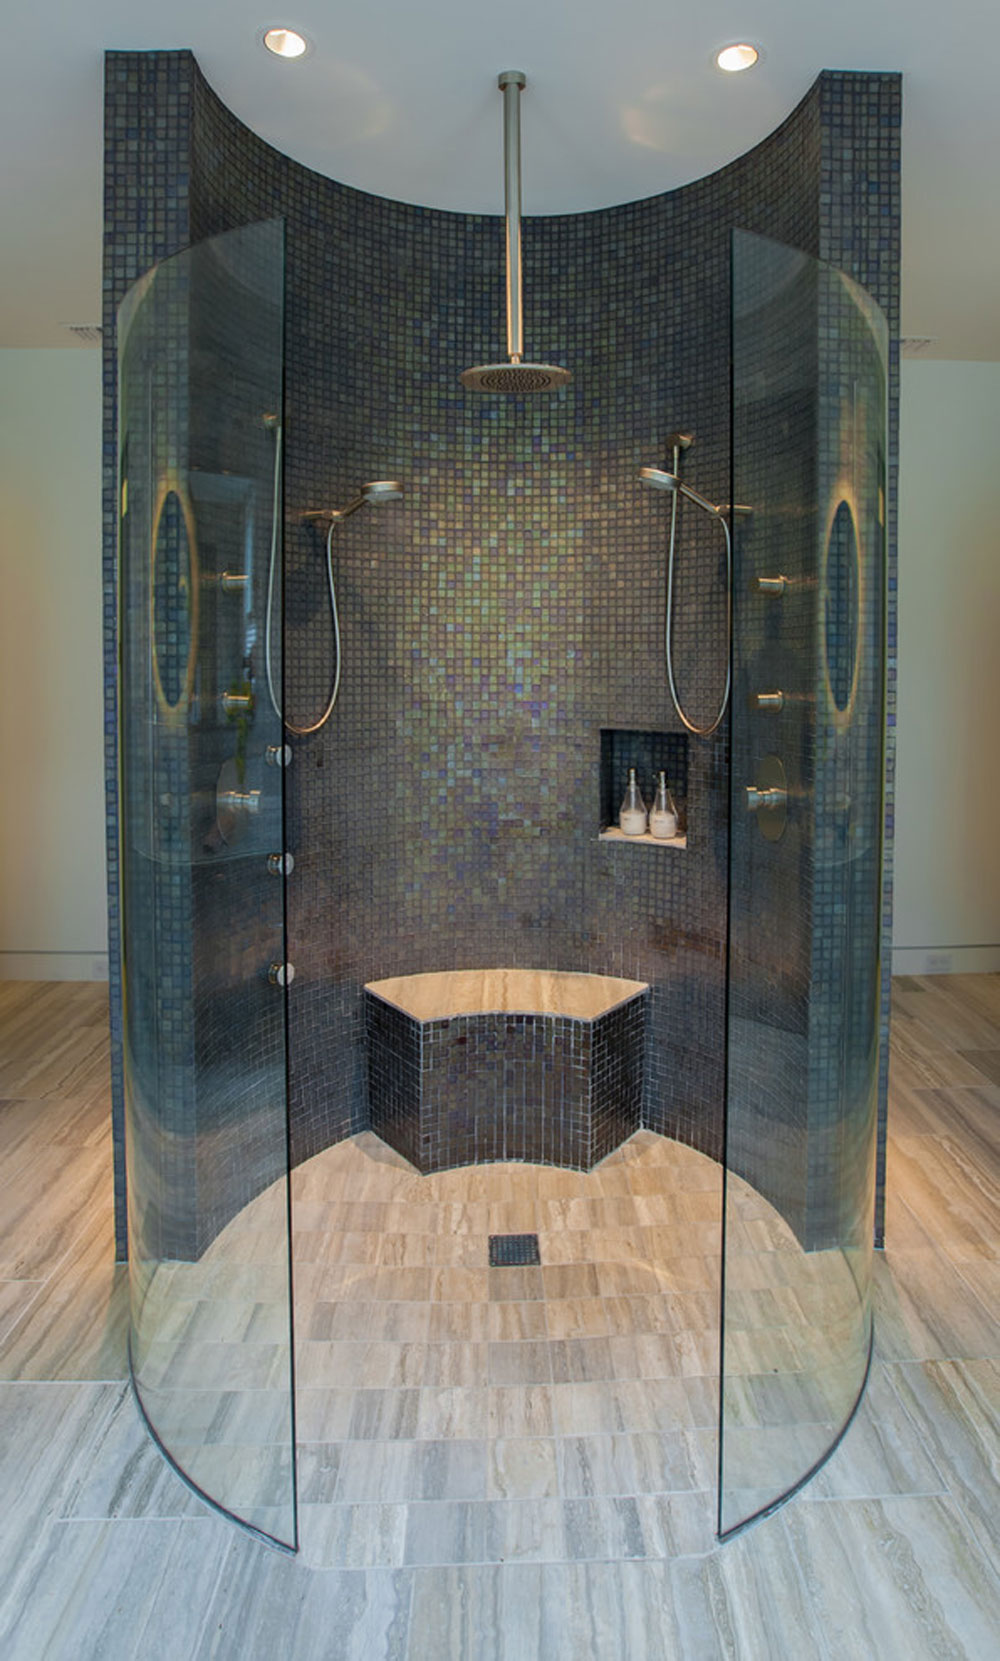 Brookridge-Home-Fall-2012-by-Key-Residential Shower Niche Ideas and Best Practices for Your Bathroom